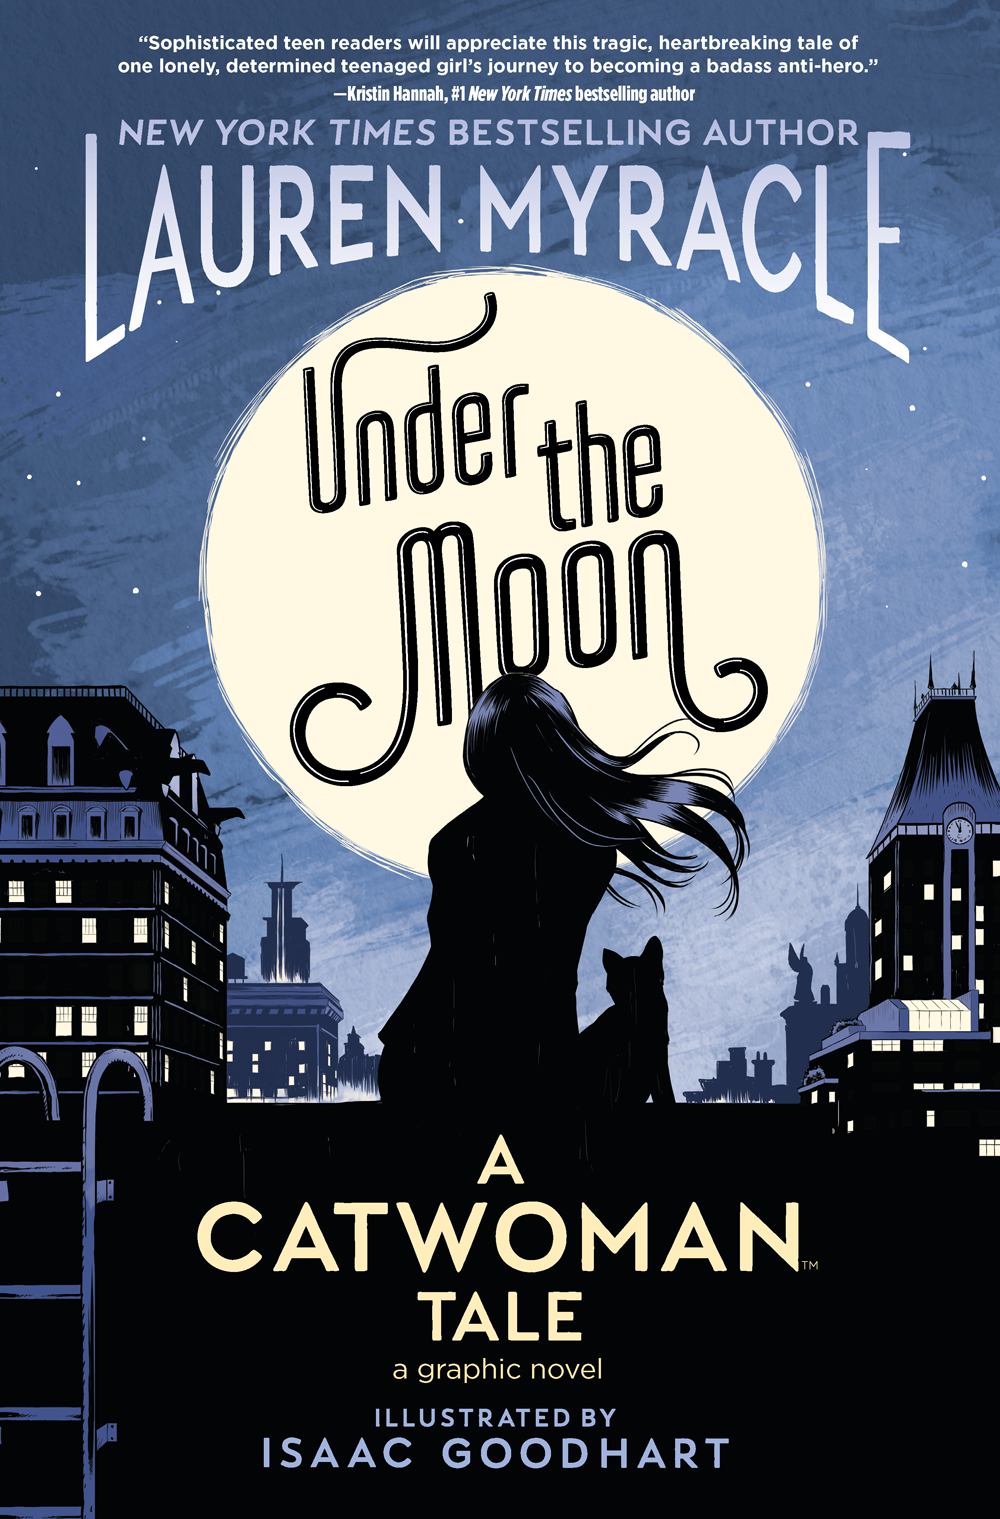 FCBD 2019 Under The Moon A Catwoman Tale Special Edition FCBD 2019 UNDER THE MOON A CATWOMAN TALE SPECIAL EDITION.jpg